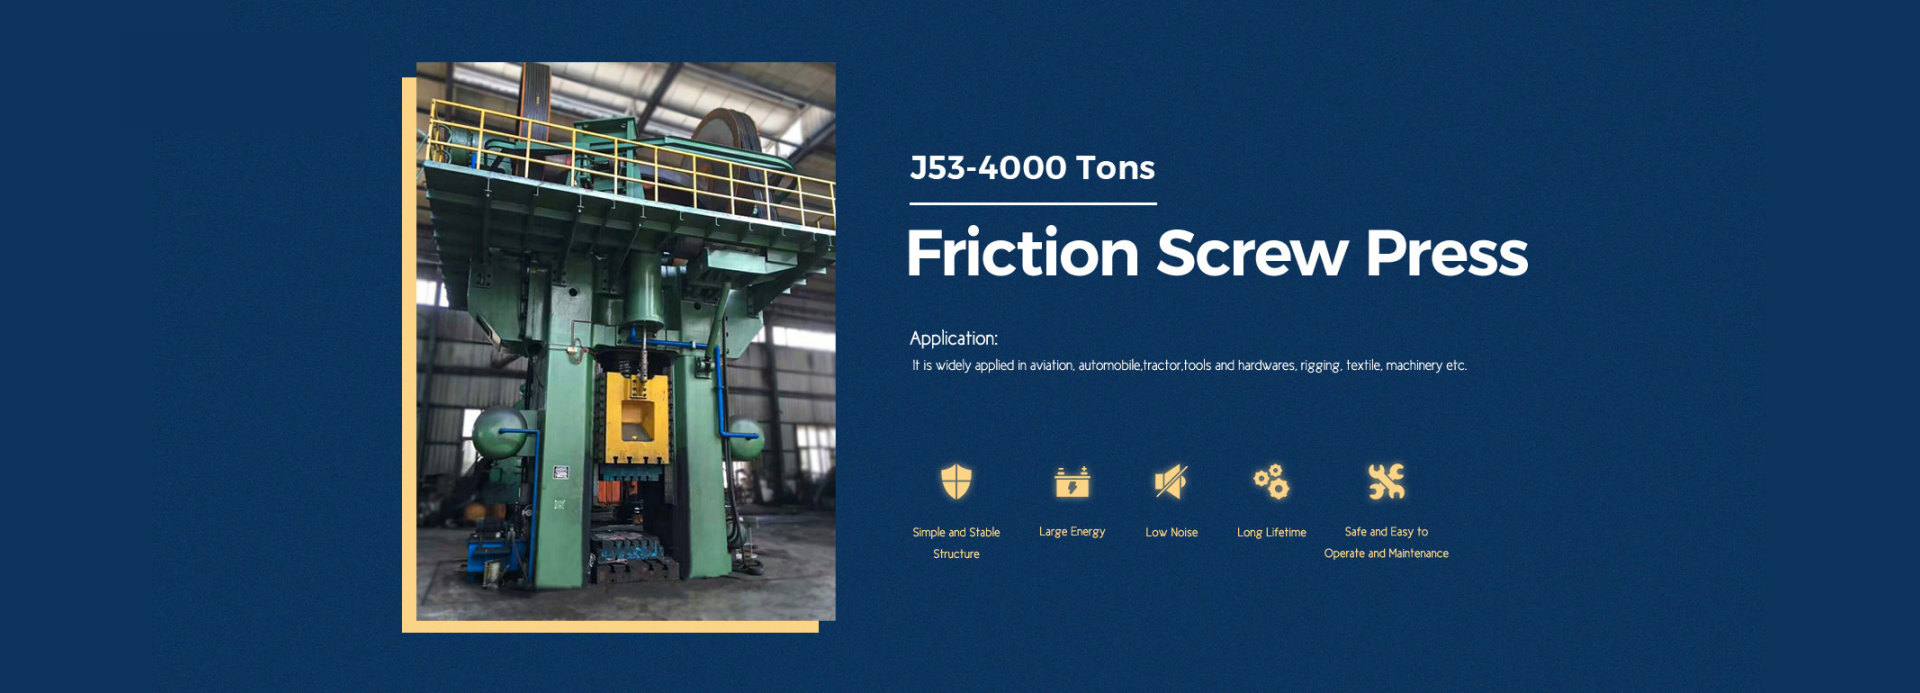 industrial metal press and friction screw press machine